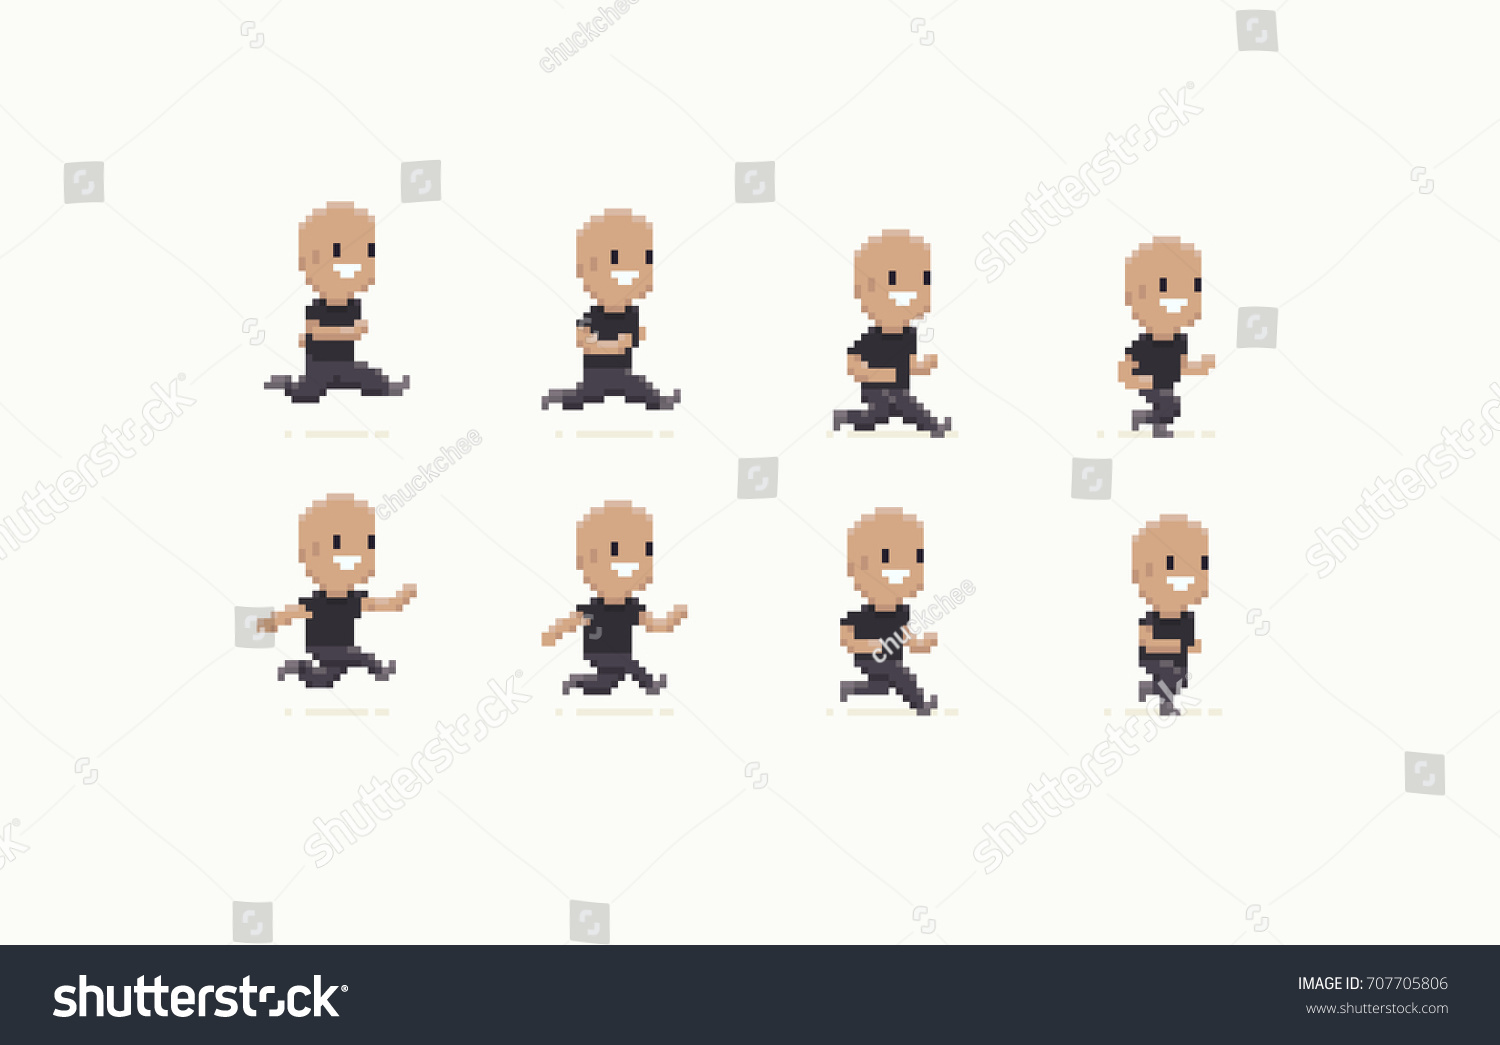 Pixel Art Male Character Run Animation Stock Vector (Royalty Free ...